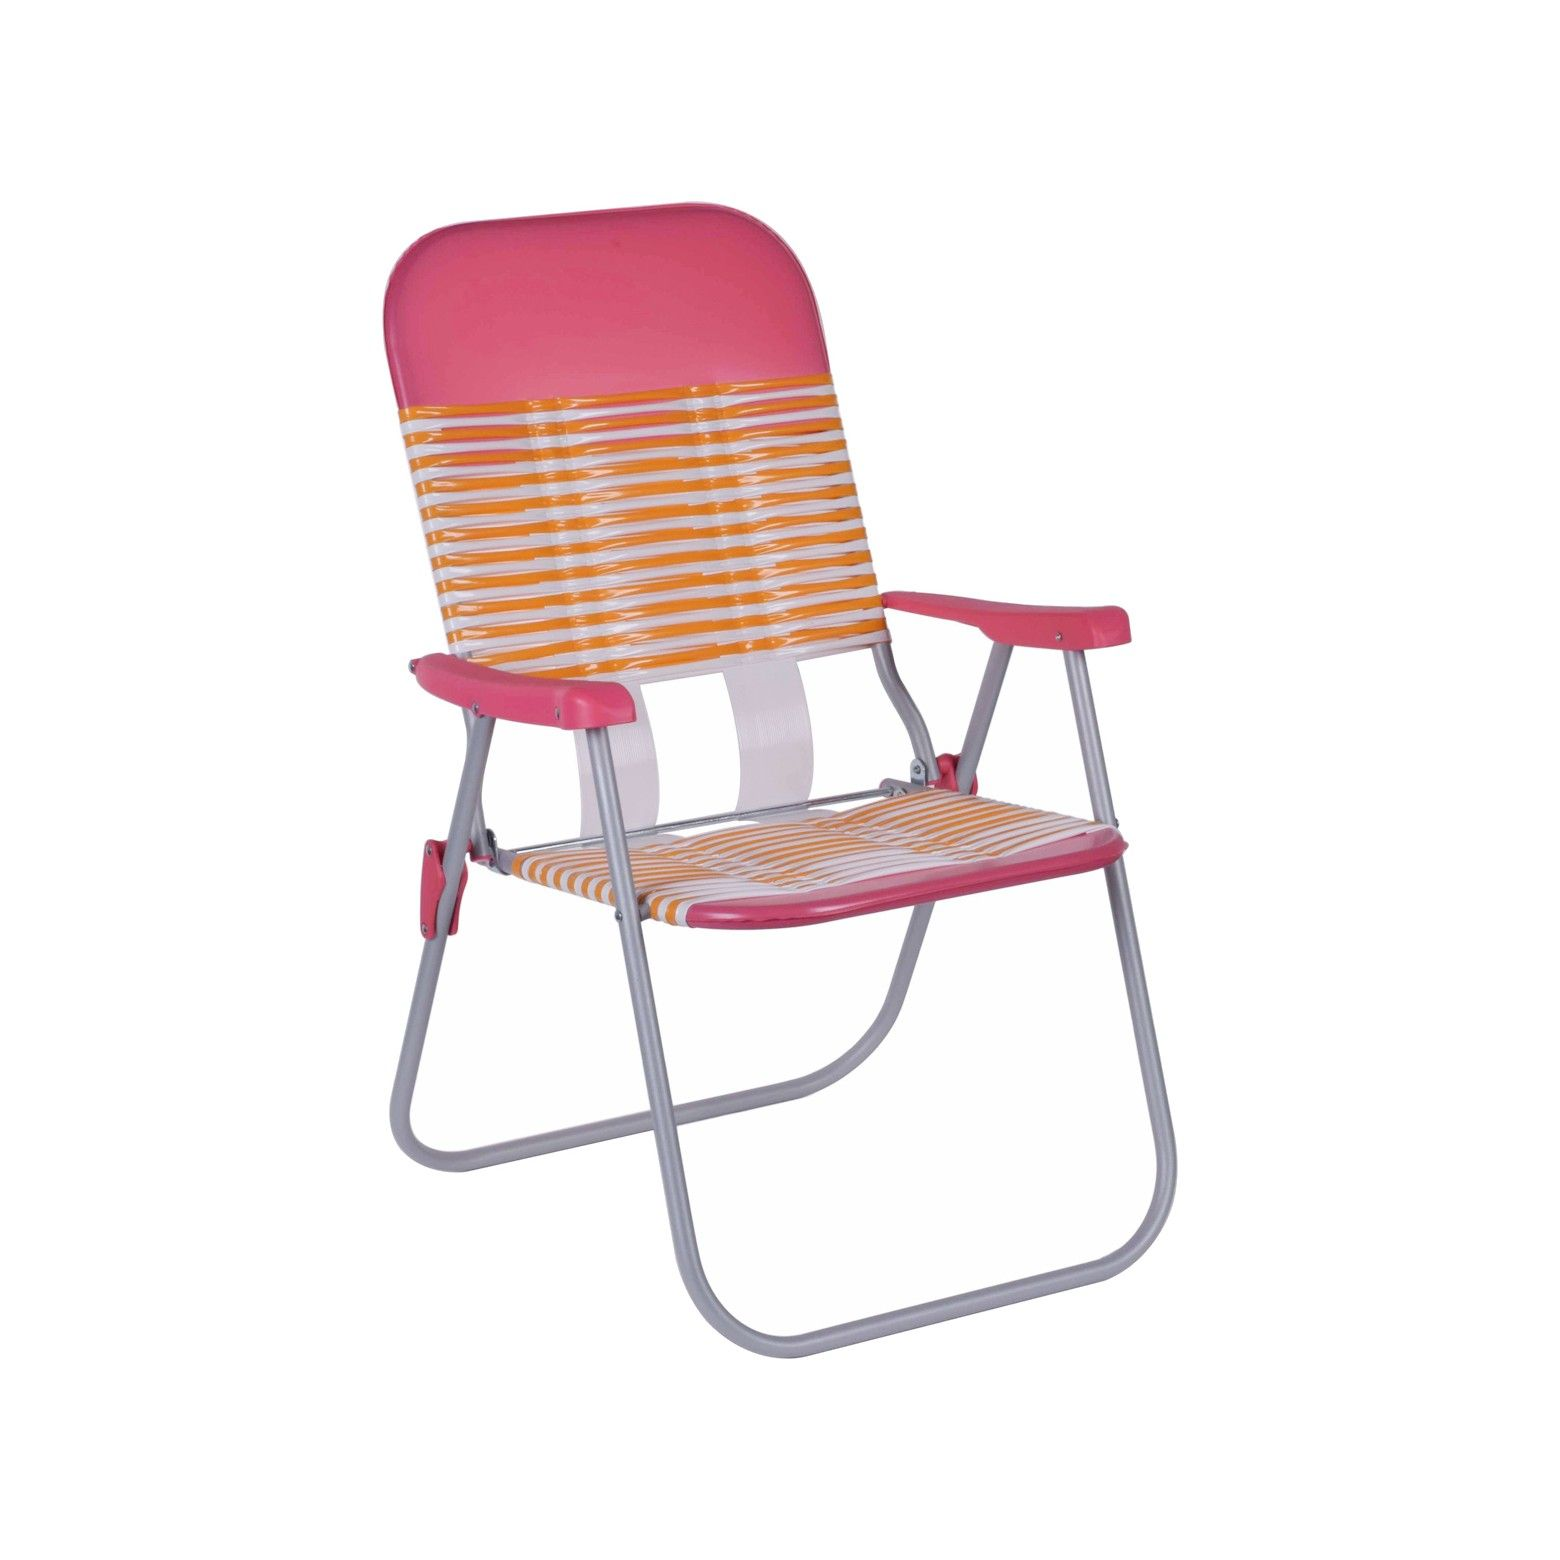 Bring A Retro Look To Your Deck With The Outdoor Jelly Folding Patio Chair In Pink X2f Orange From Roo Folding Beach Chair Beach Chairs Outdoor Folding Chairs